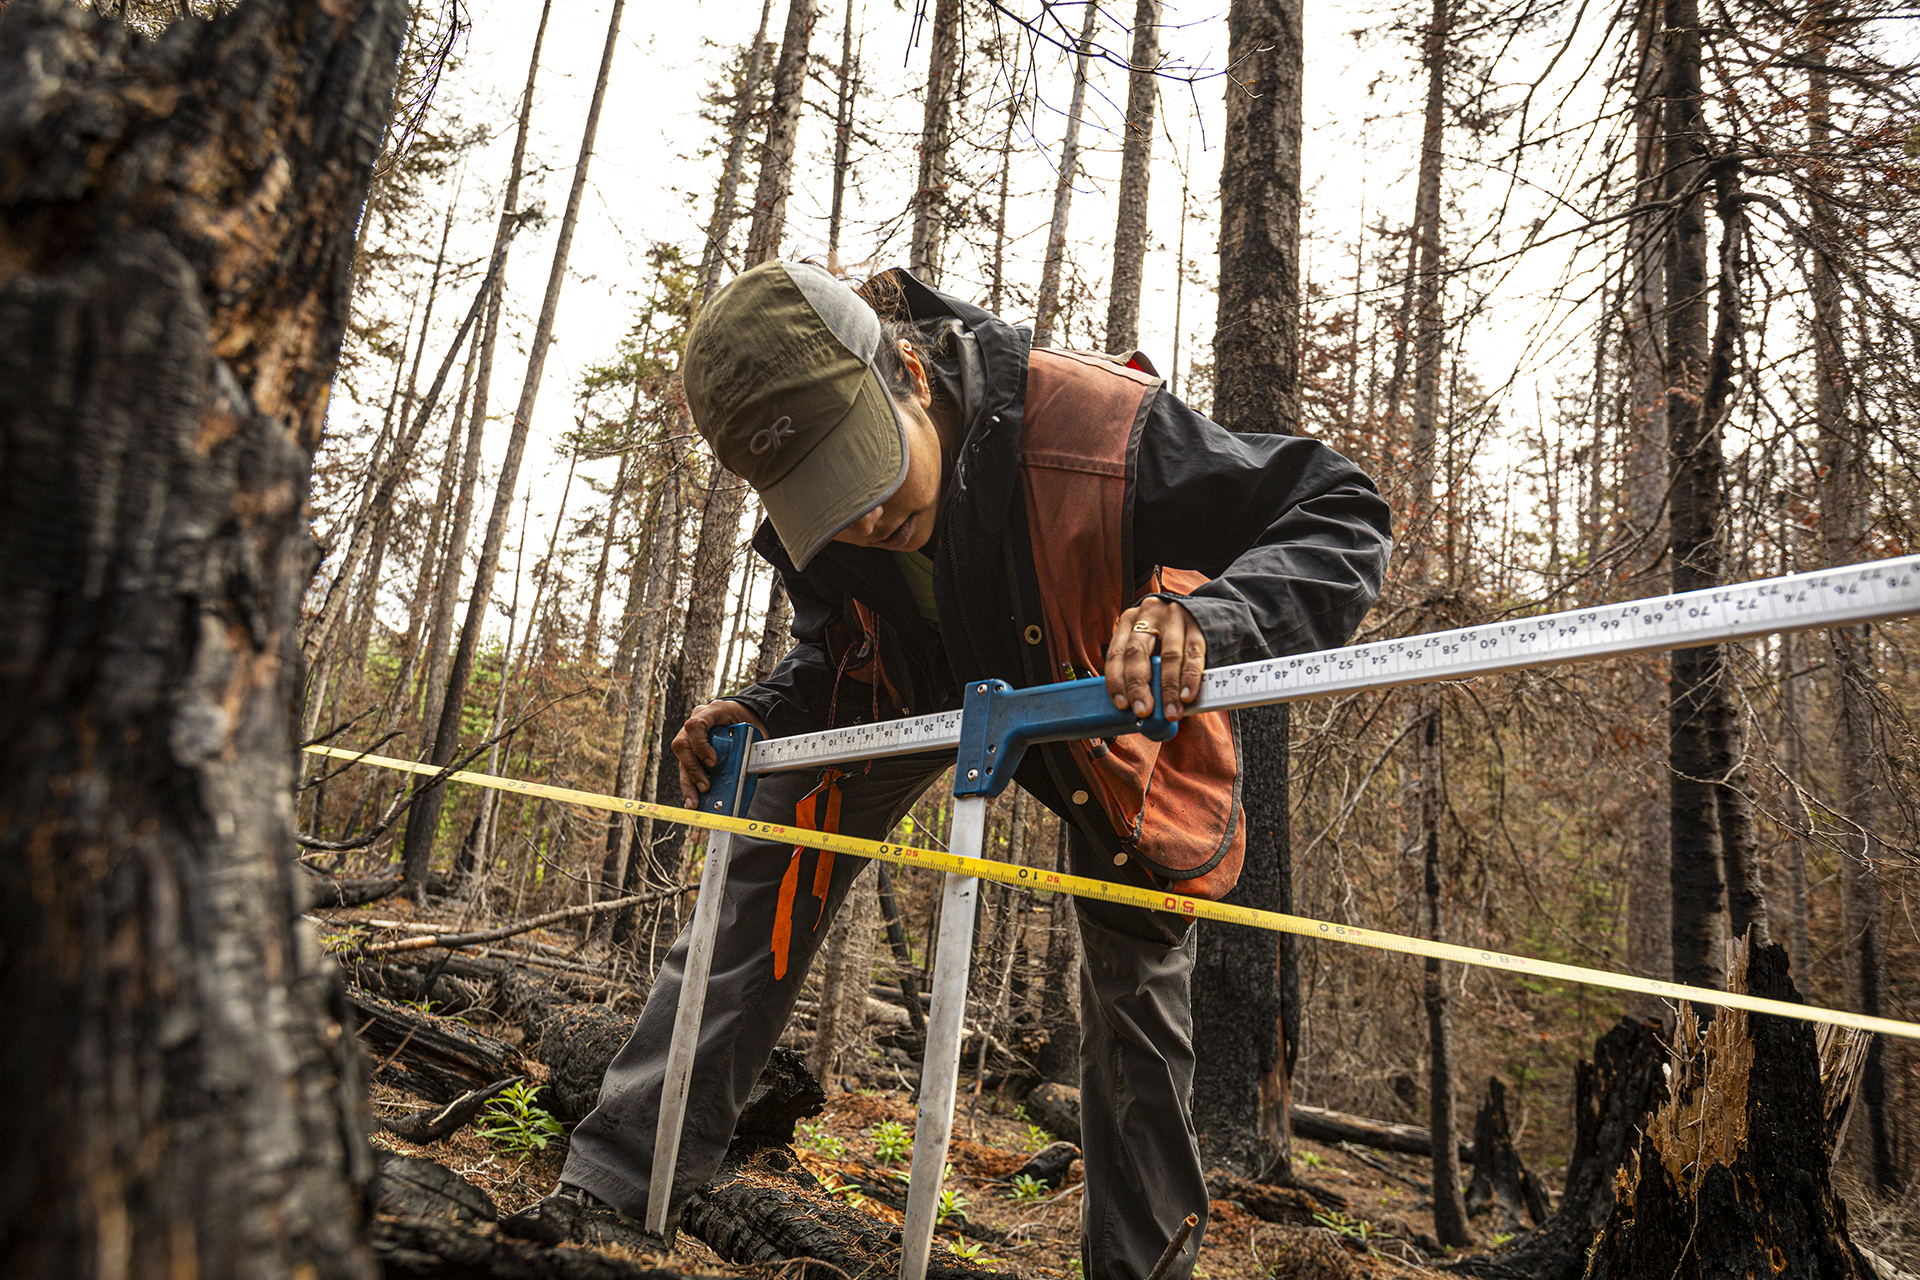 Jayasekera measures a downed log as part of a survey of the forest's recovery after the Norse Peak fire